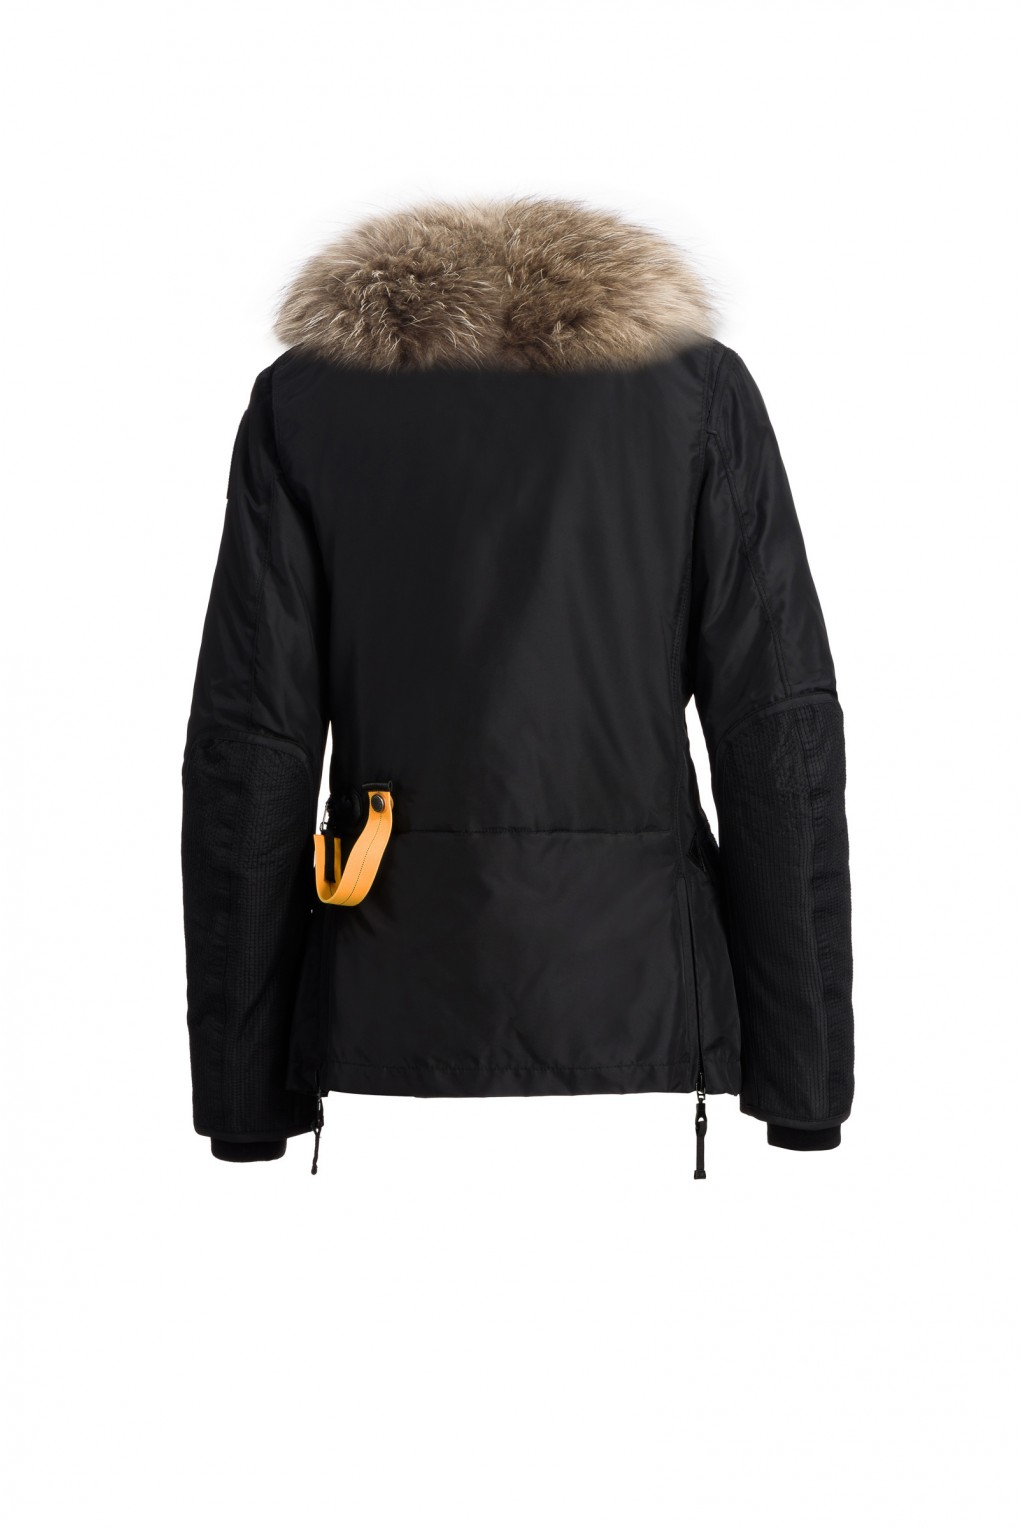 parajumpers winterjas dames outlet